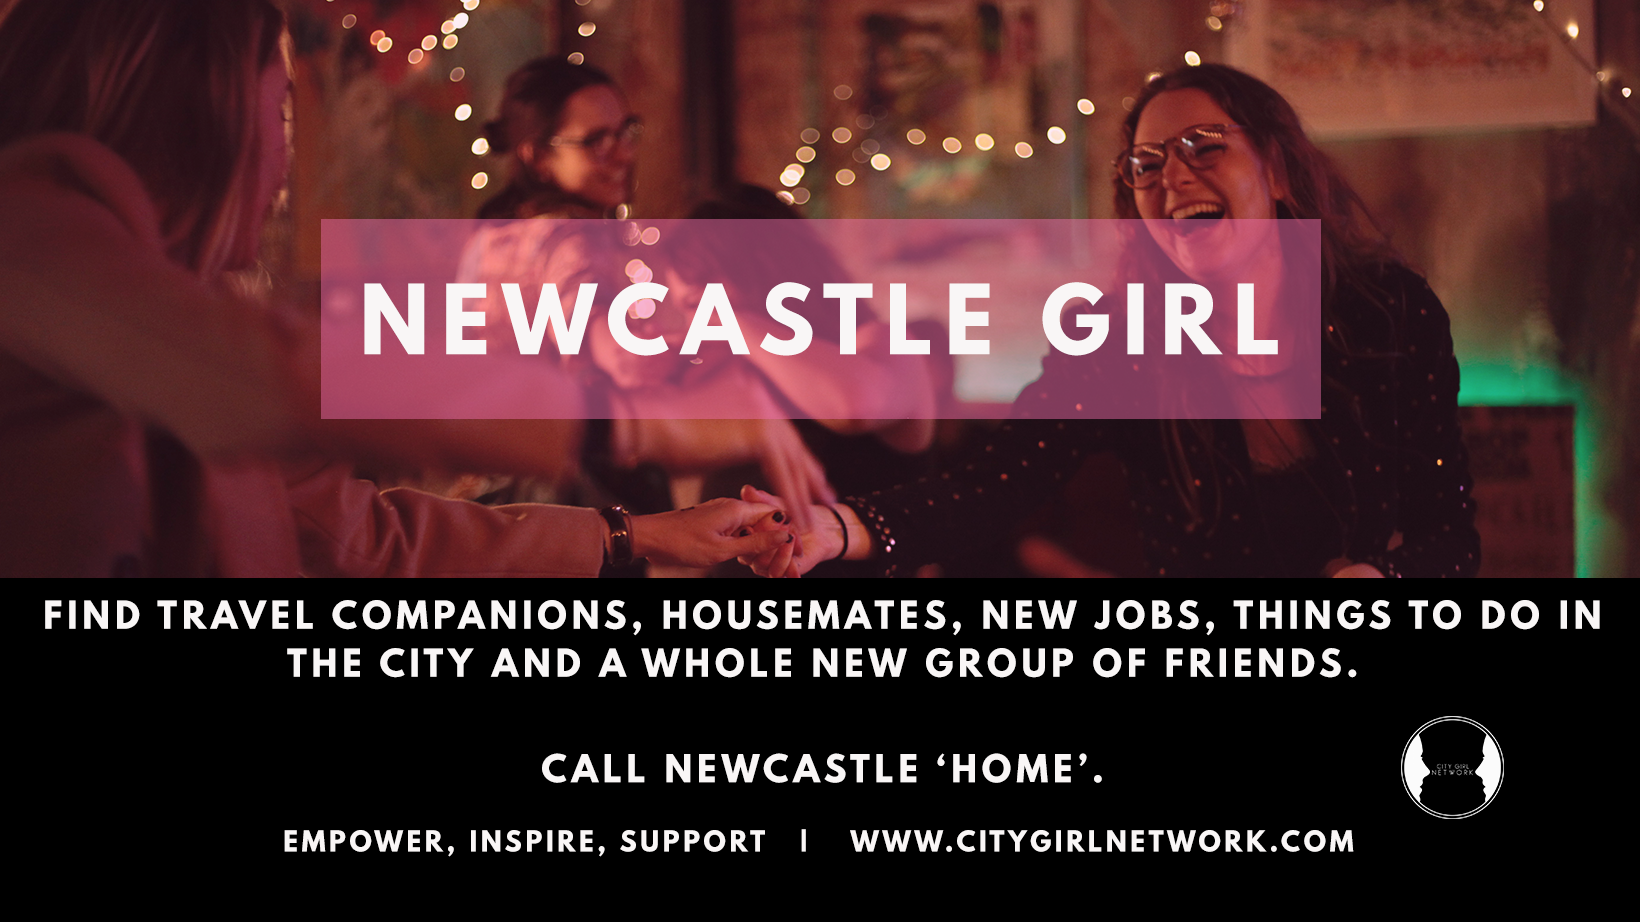 Newcastle Girl